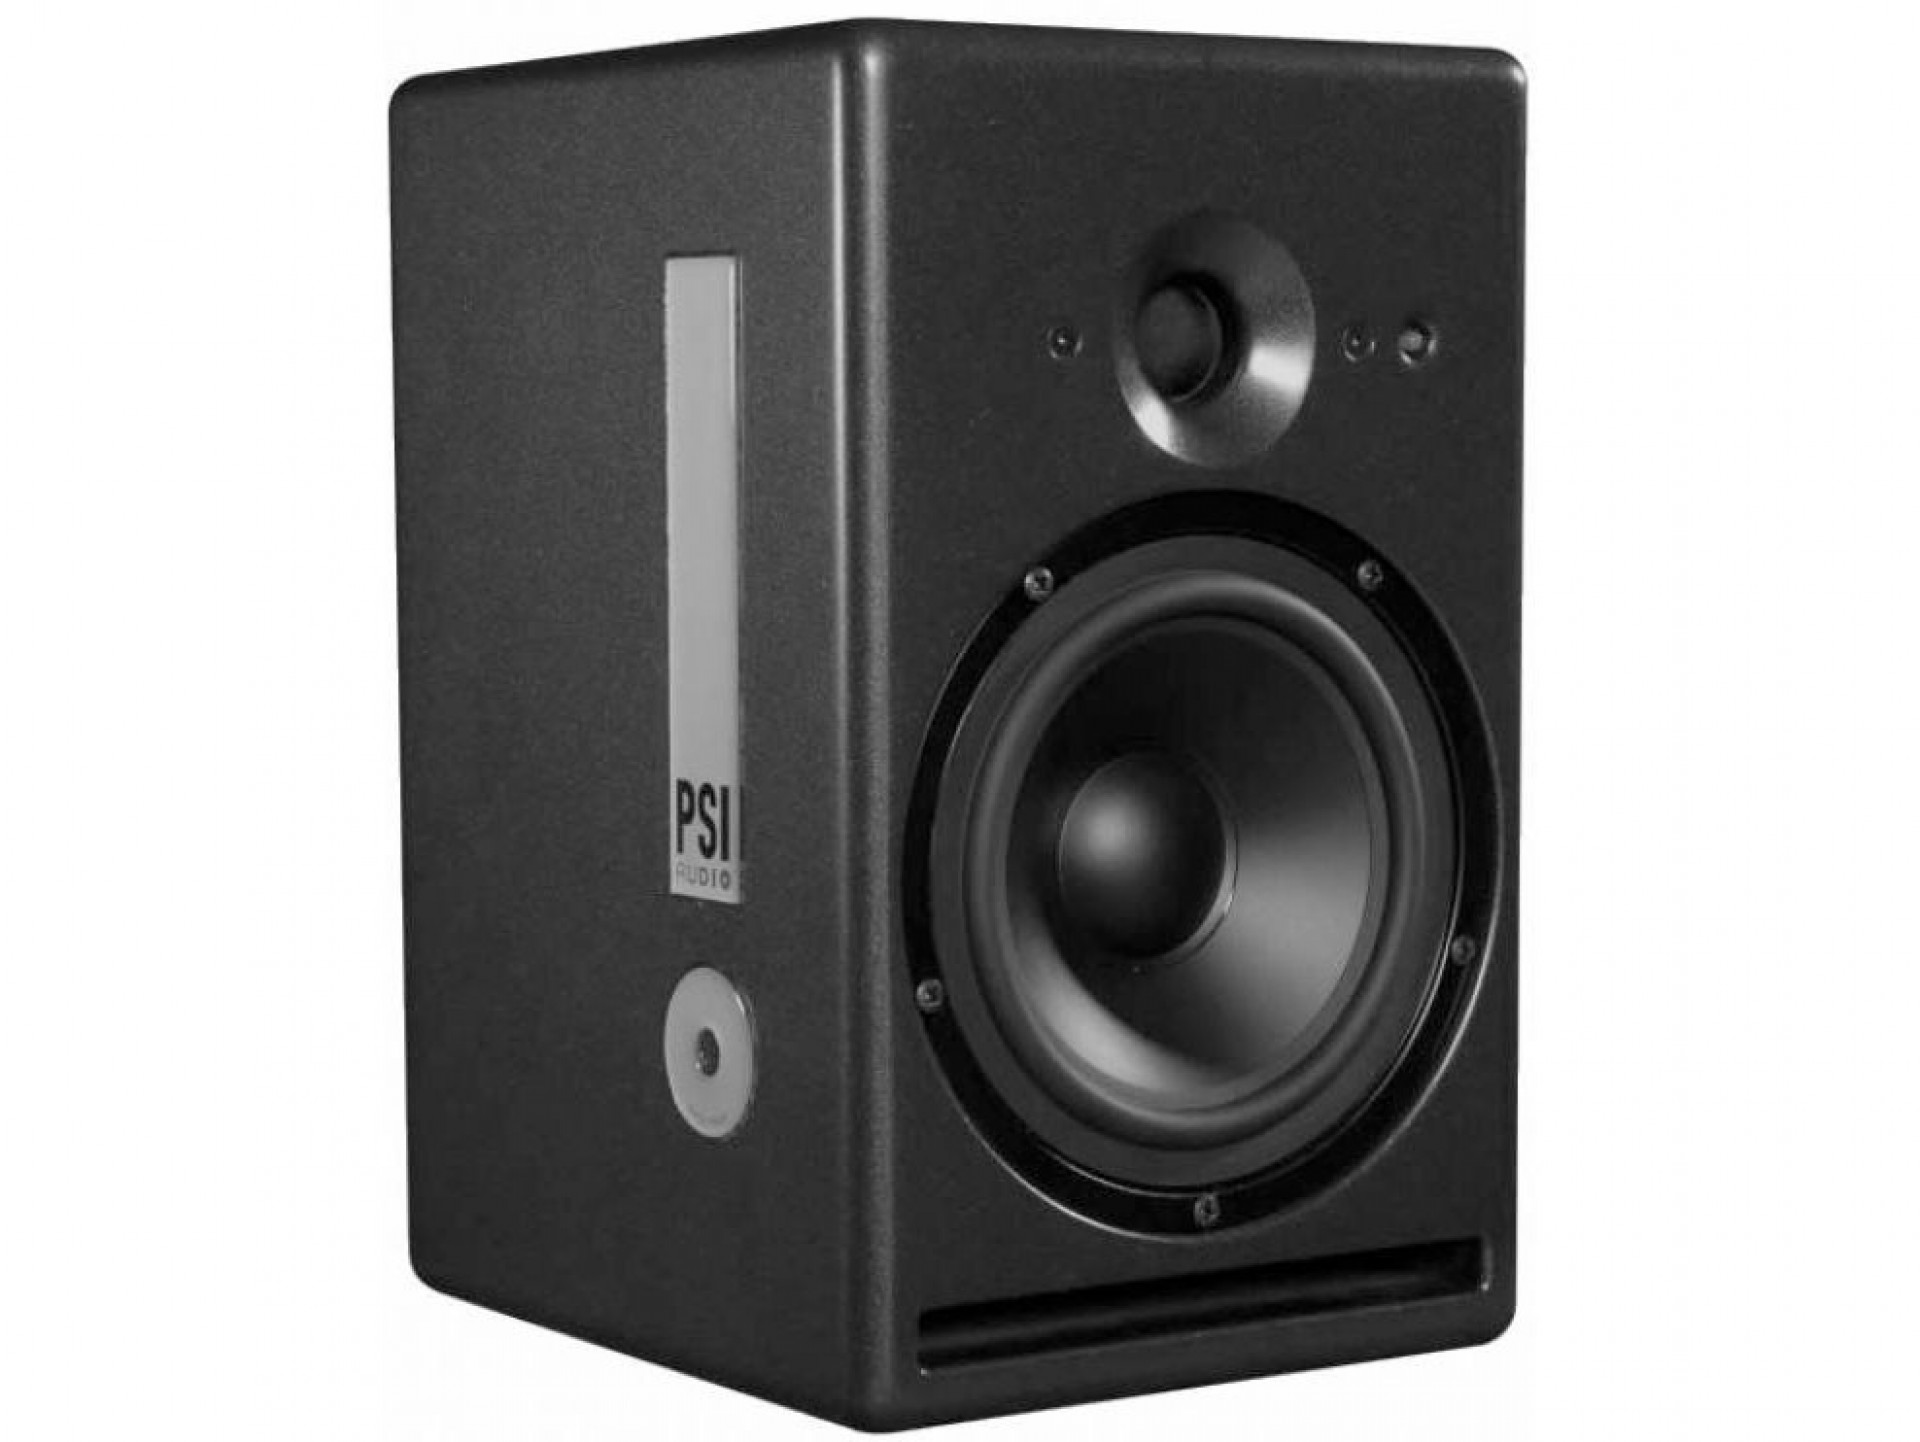 PSI AUDIO A21-M Studio Black